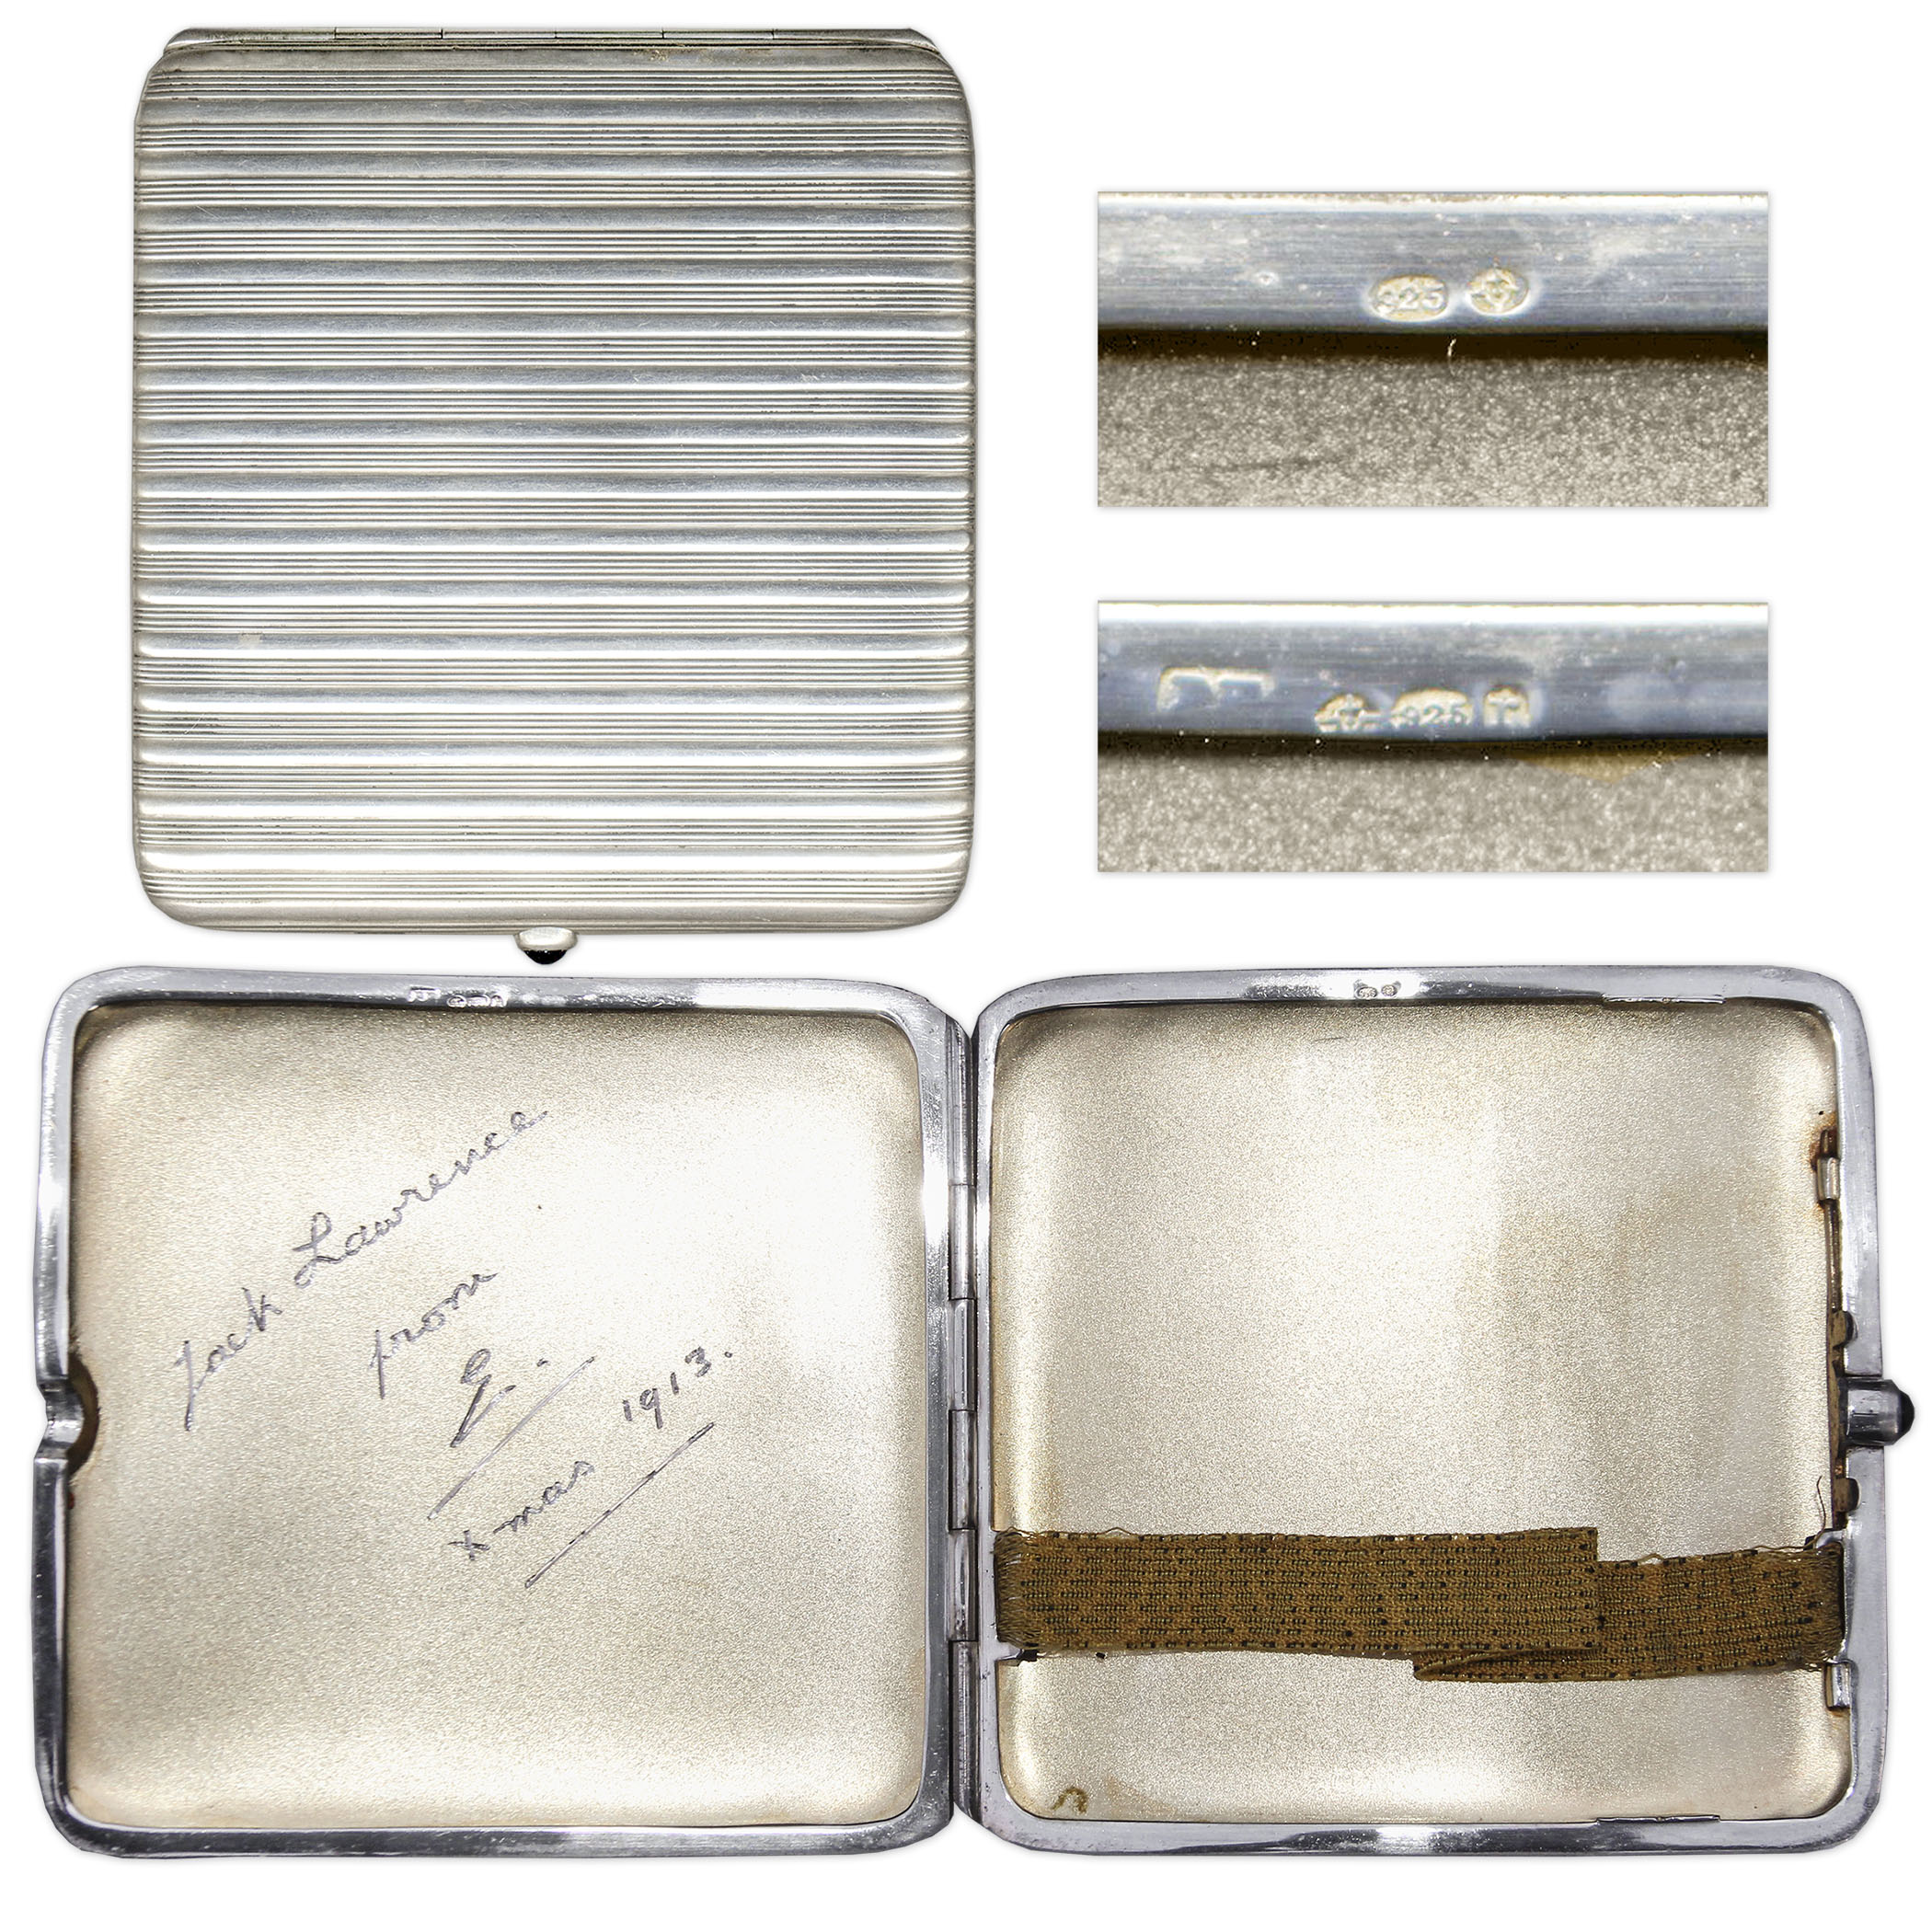 King Edward Memorabilia Prince Edward VIII Silver Cigarette Case -- Given to a Friend in 1913, With Engraving in Edward's Hand